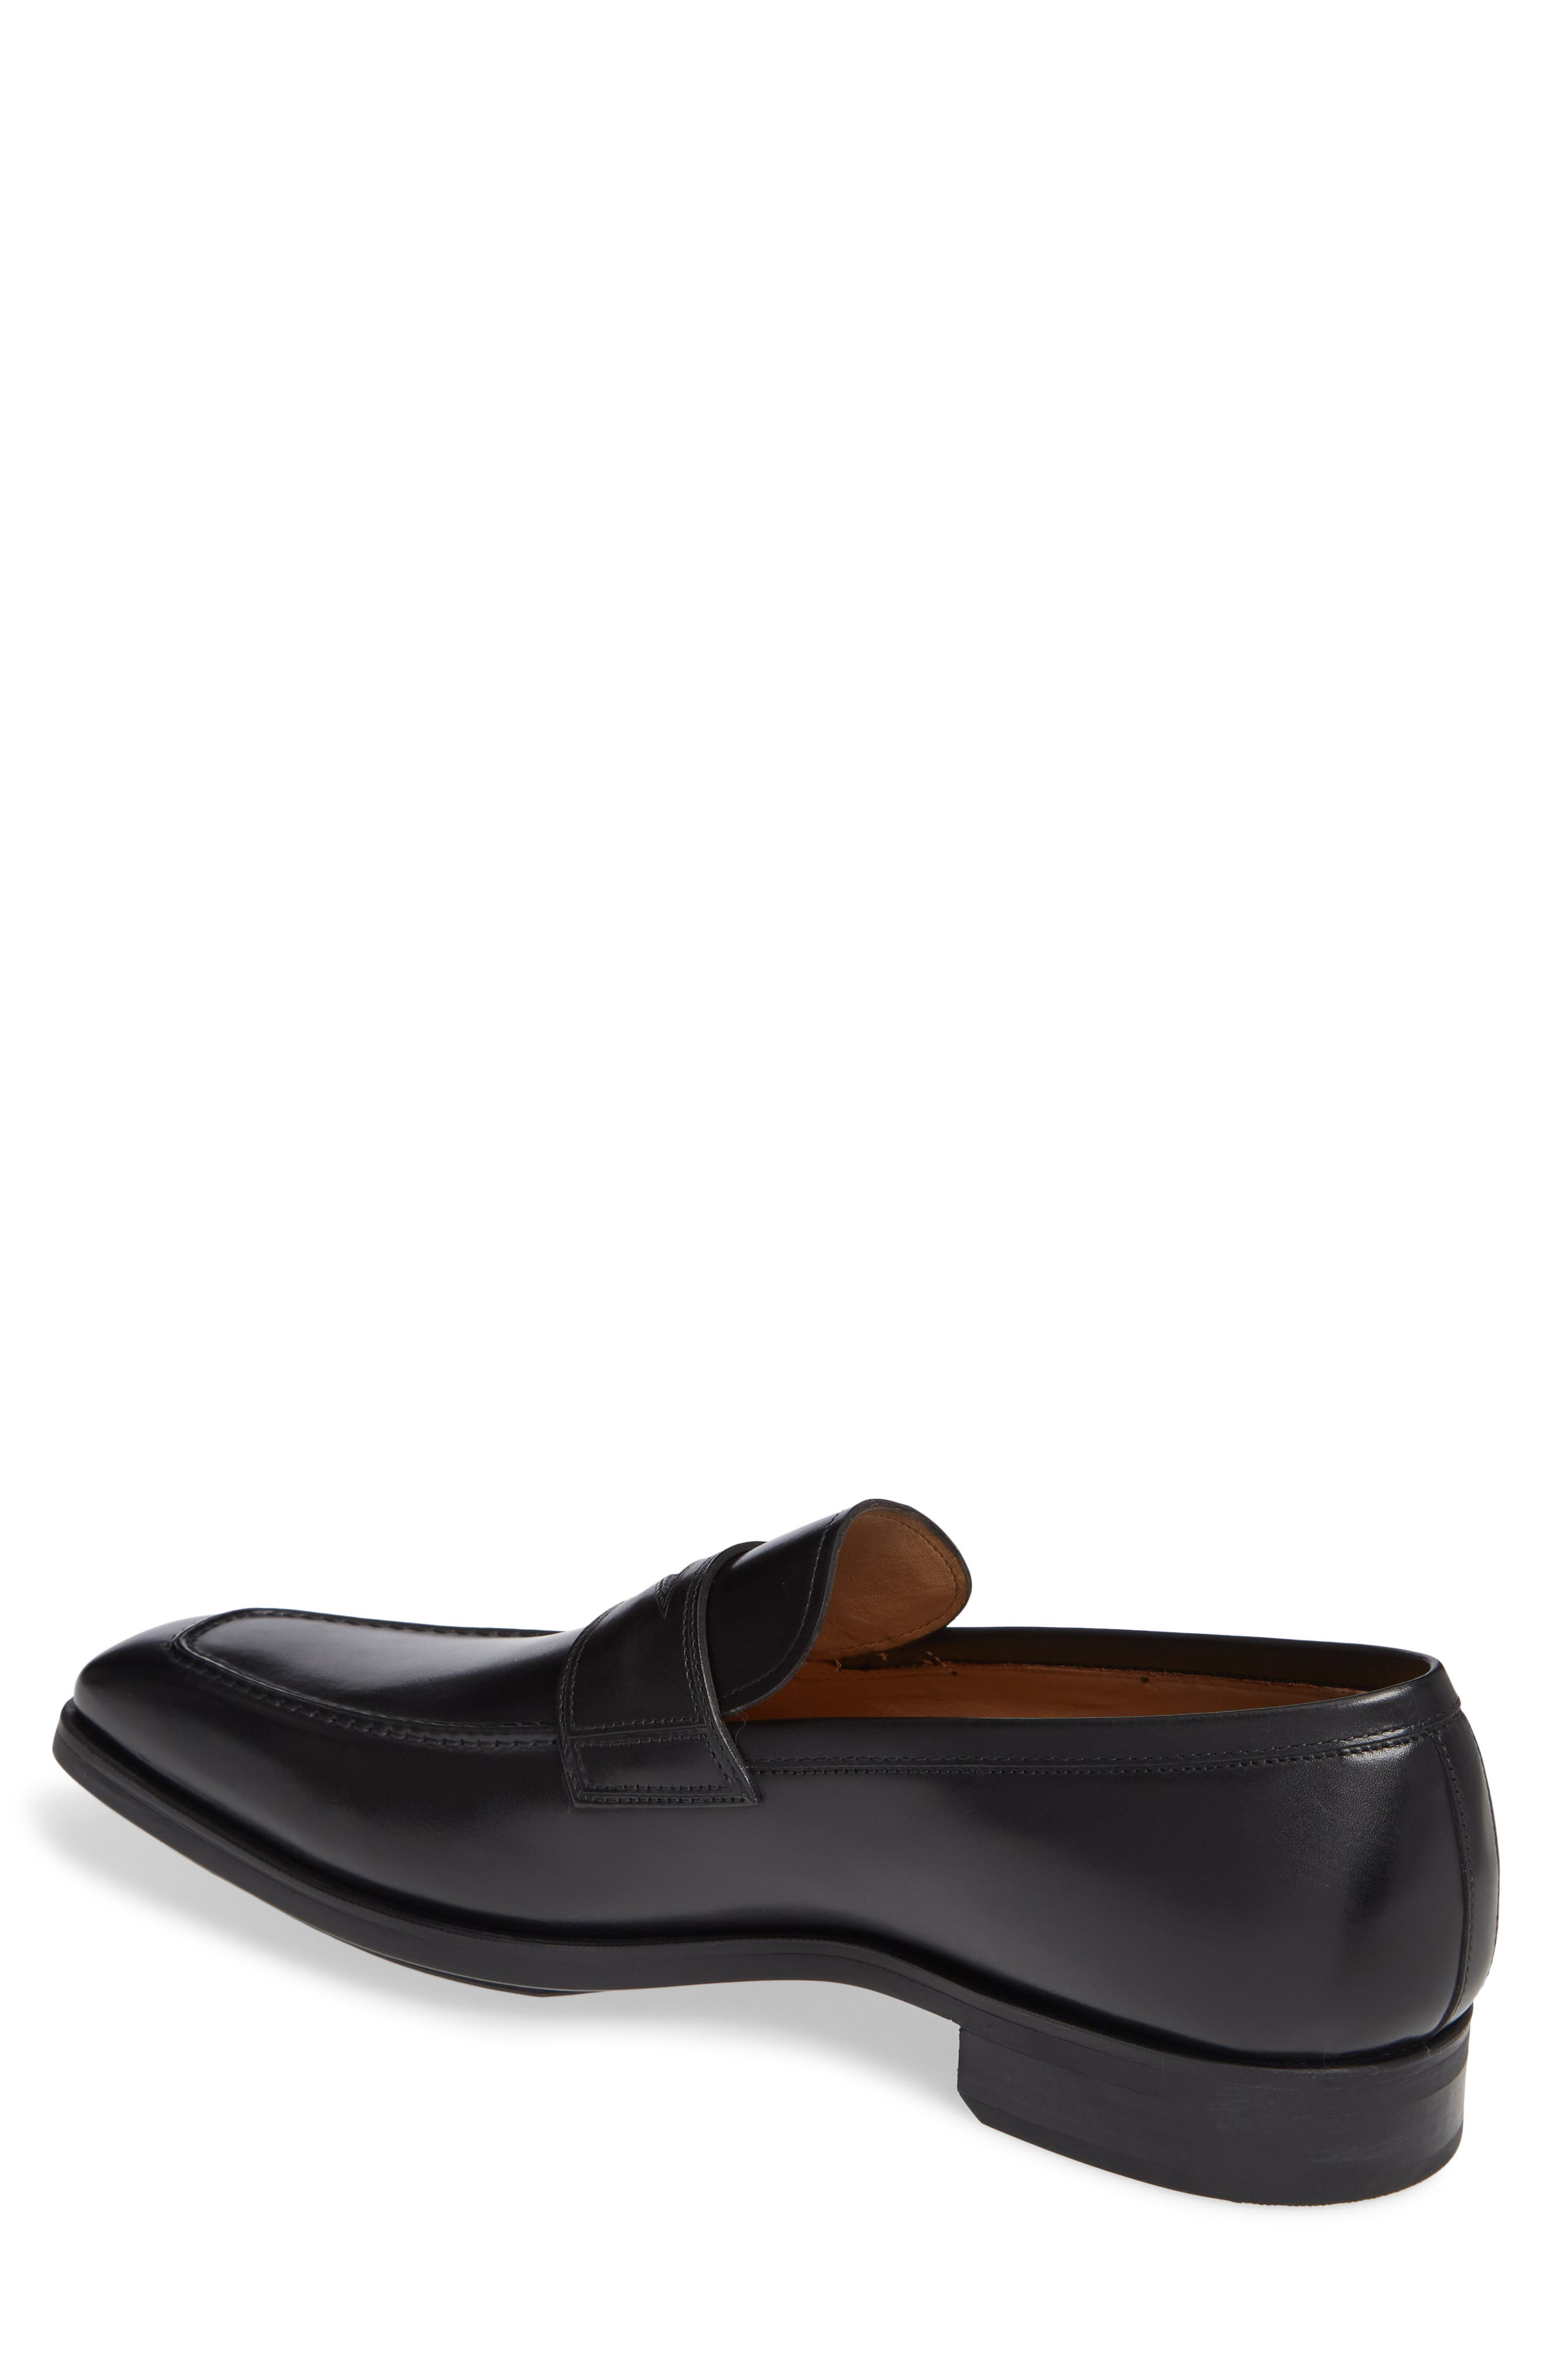 Ramon Penny Loafer,                             Alternate thumbnail 2, color,                             001